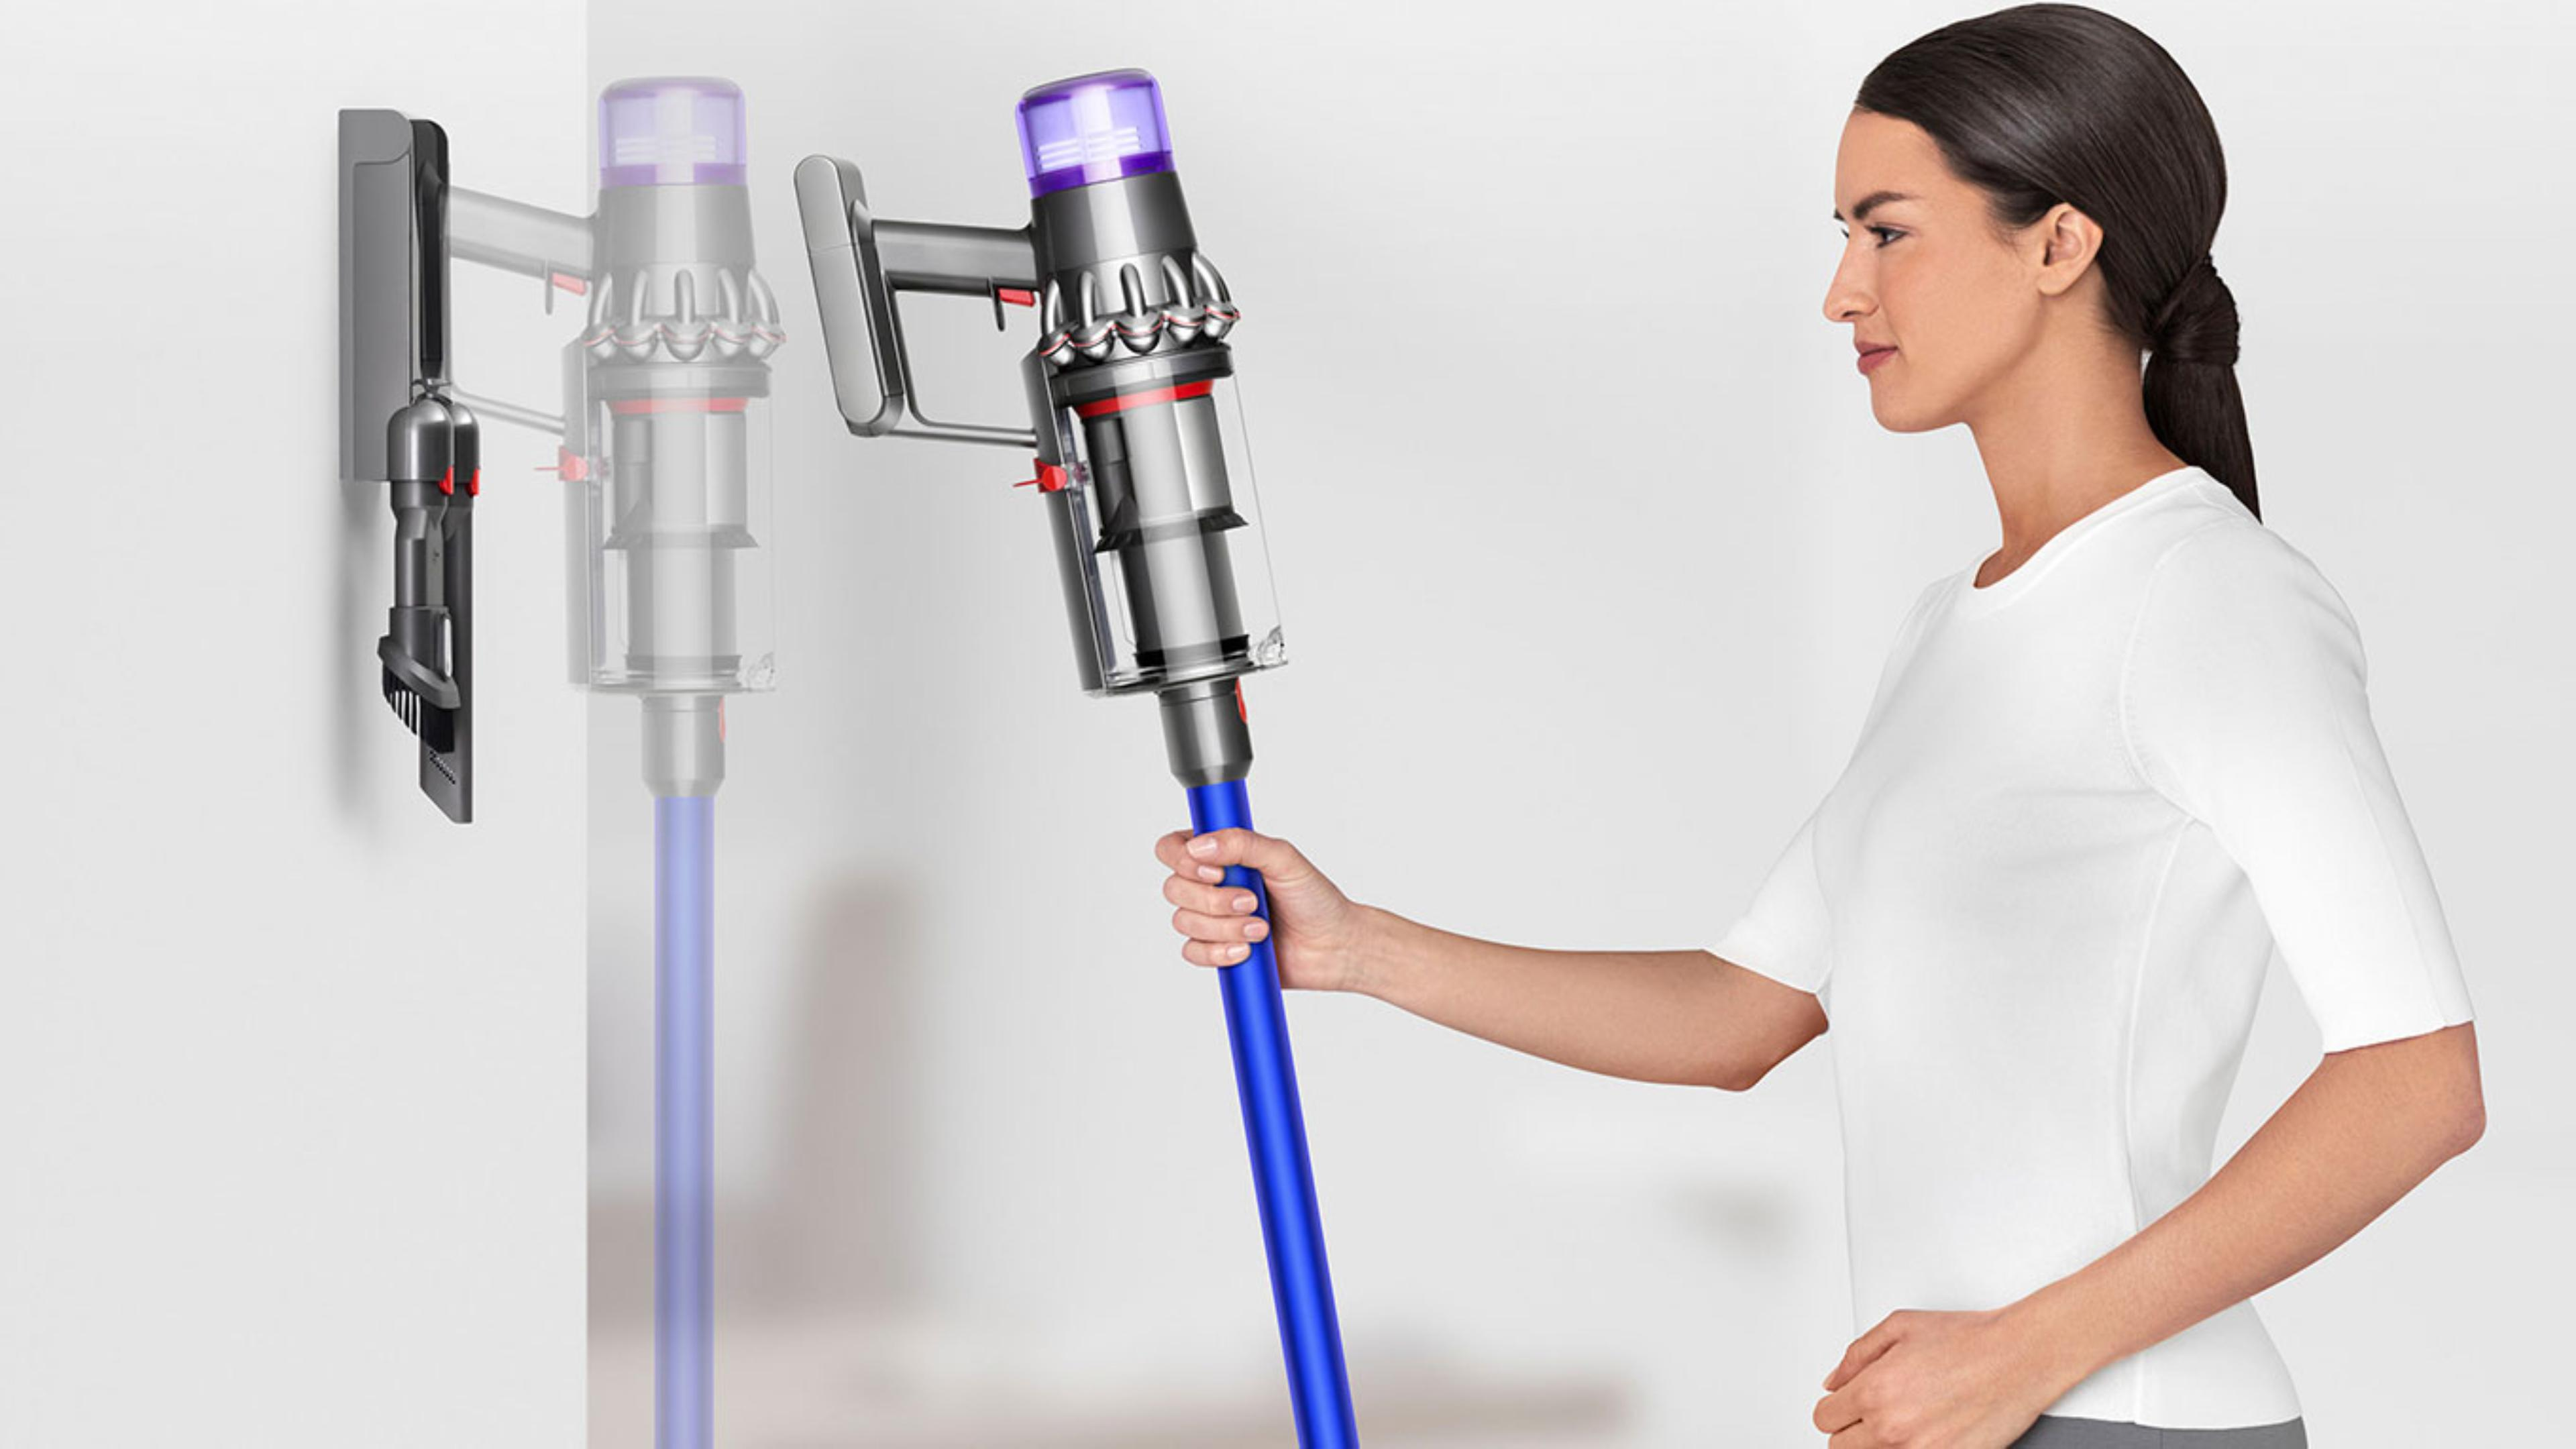 Dyson V11 vacuum cleaner being placed into wall mounted dock